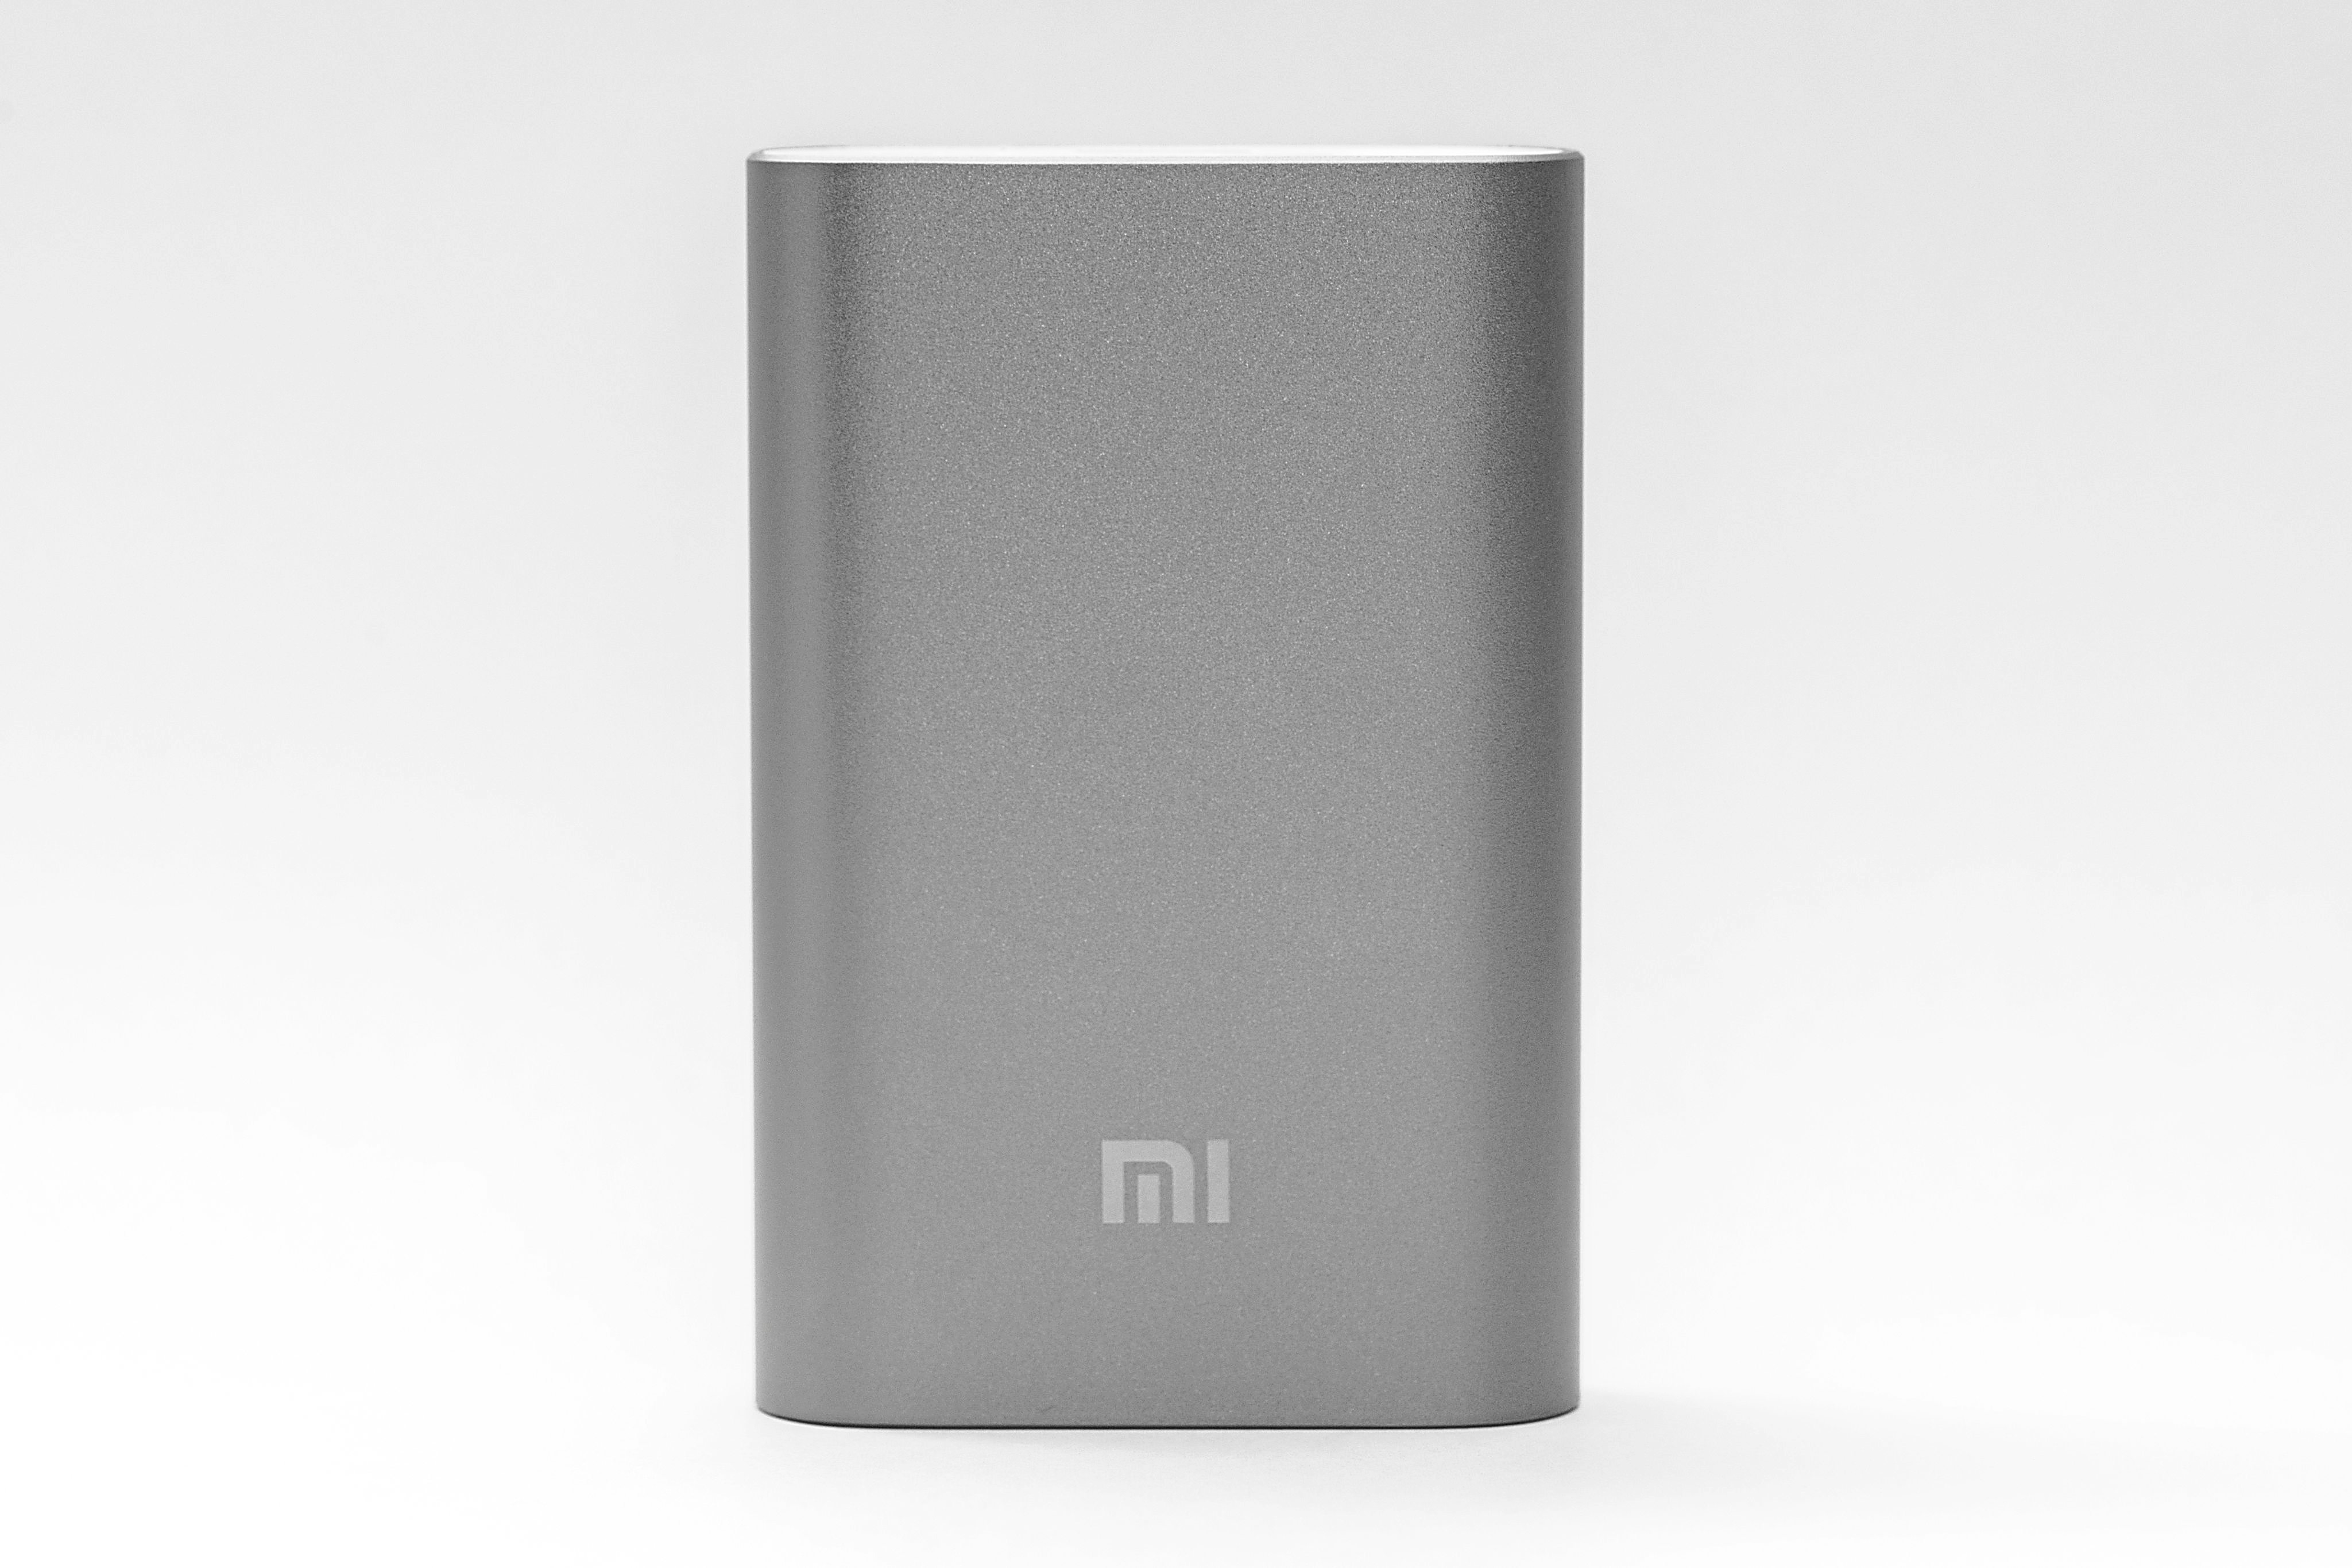 Packing power: the Xiaomi Mi Power Bank 10,000mAh is a great gift for anyone who needs to charge on the road